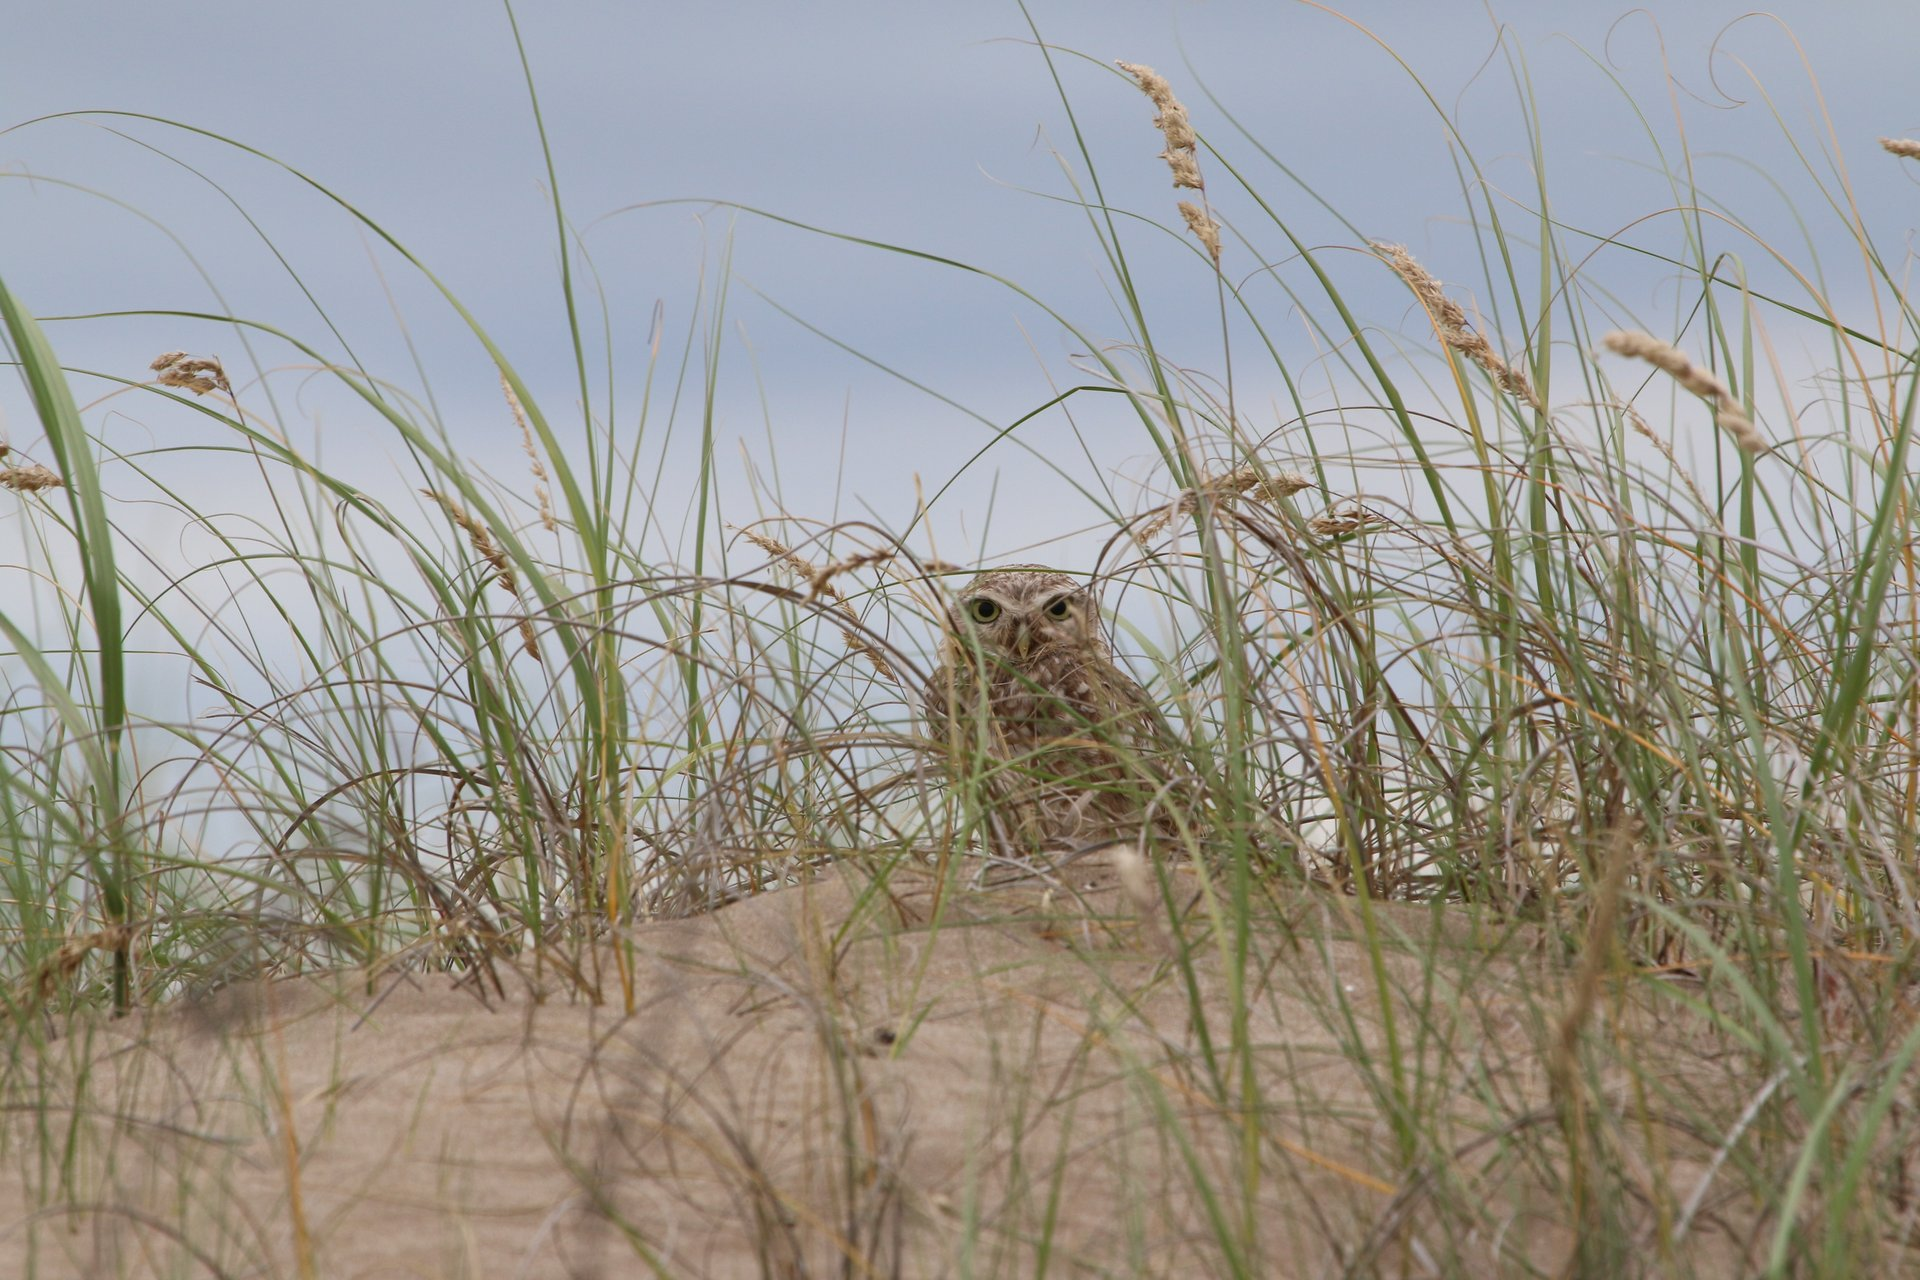 Best time for Burrowing Owl Nesting Season in Argentina